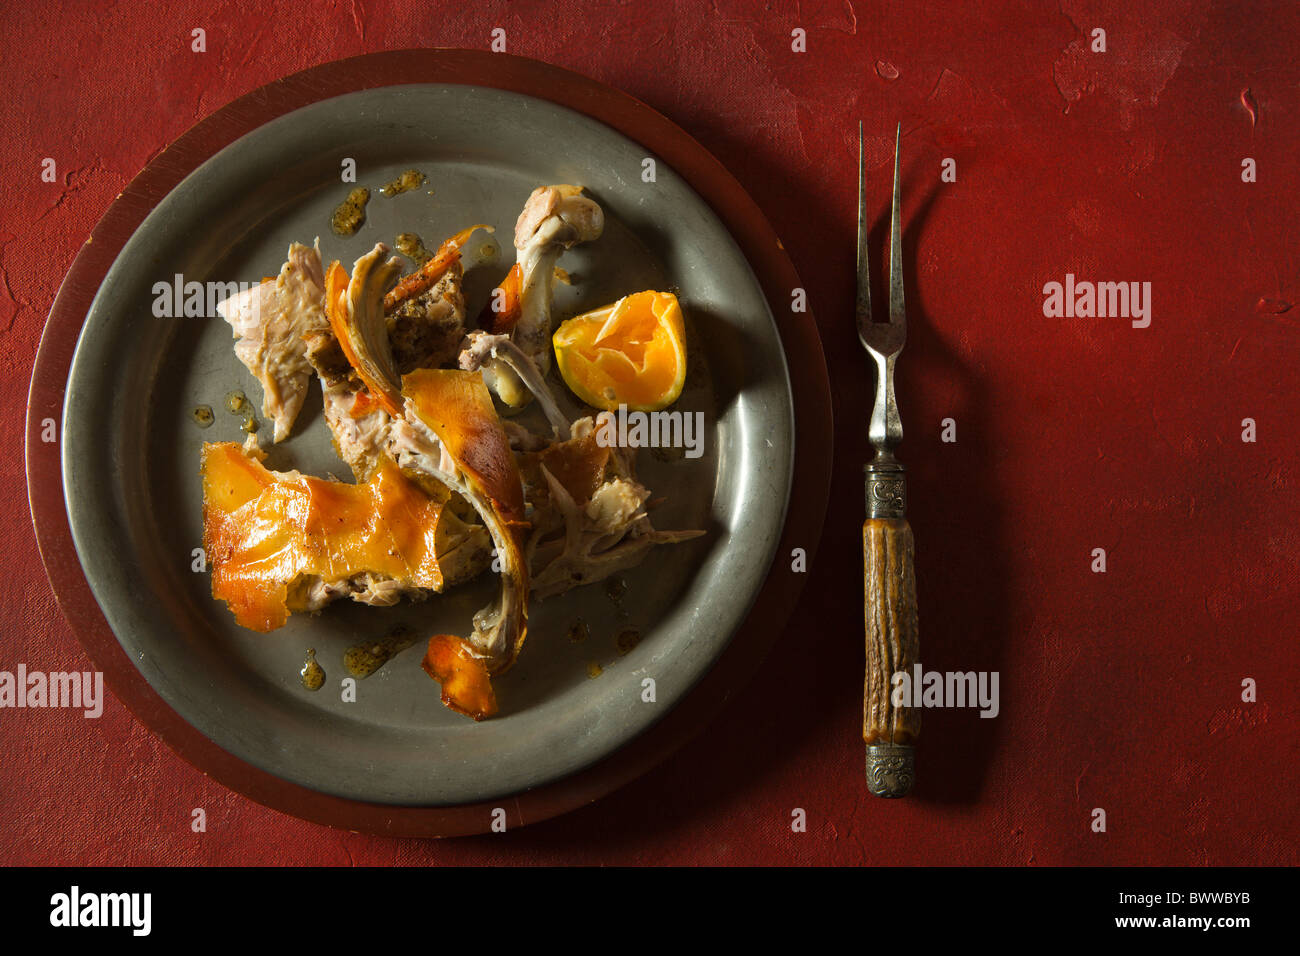 Roasted Suckling Pick prepared at the Mediterranean Manor in Newark, NJ. - Stock Image